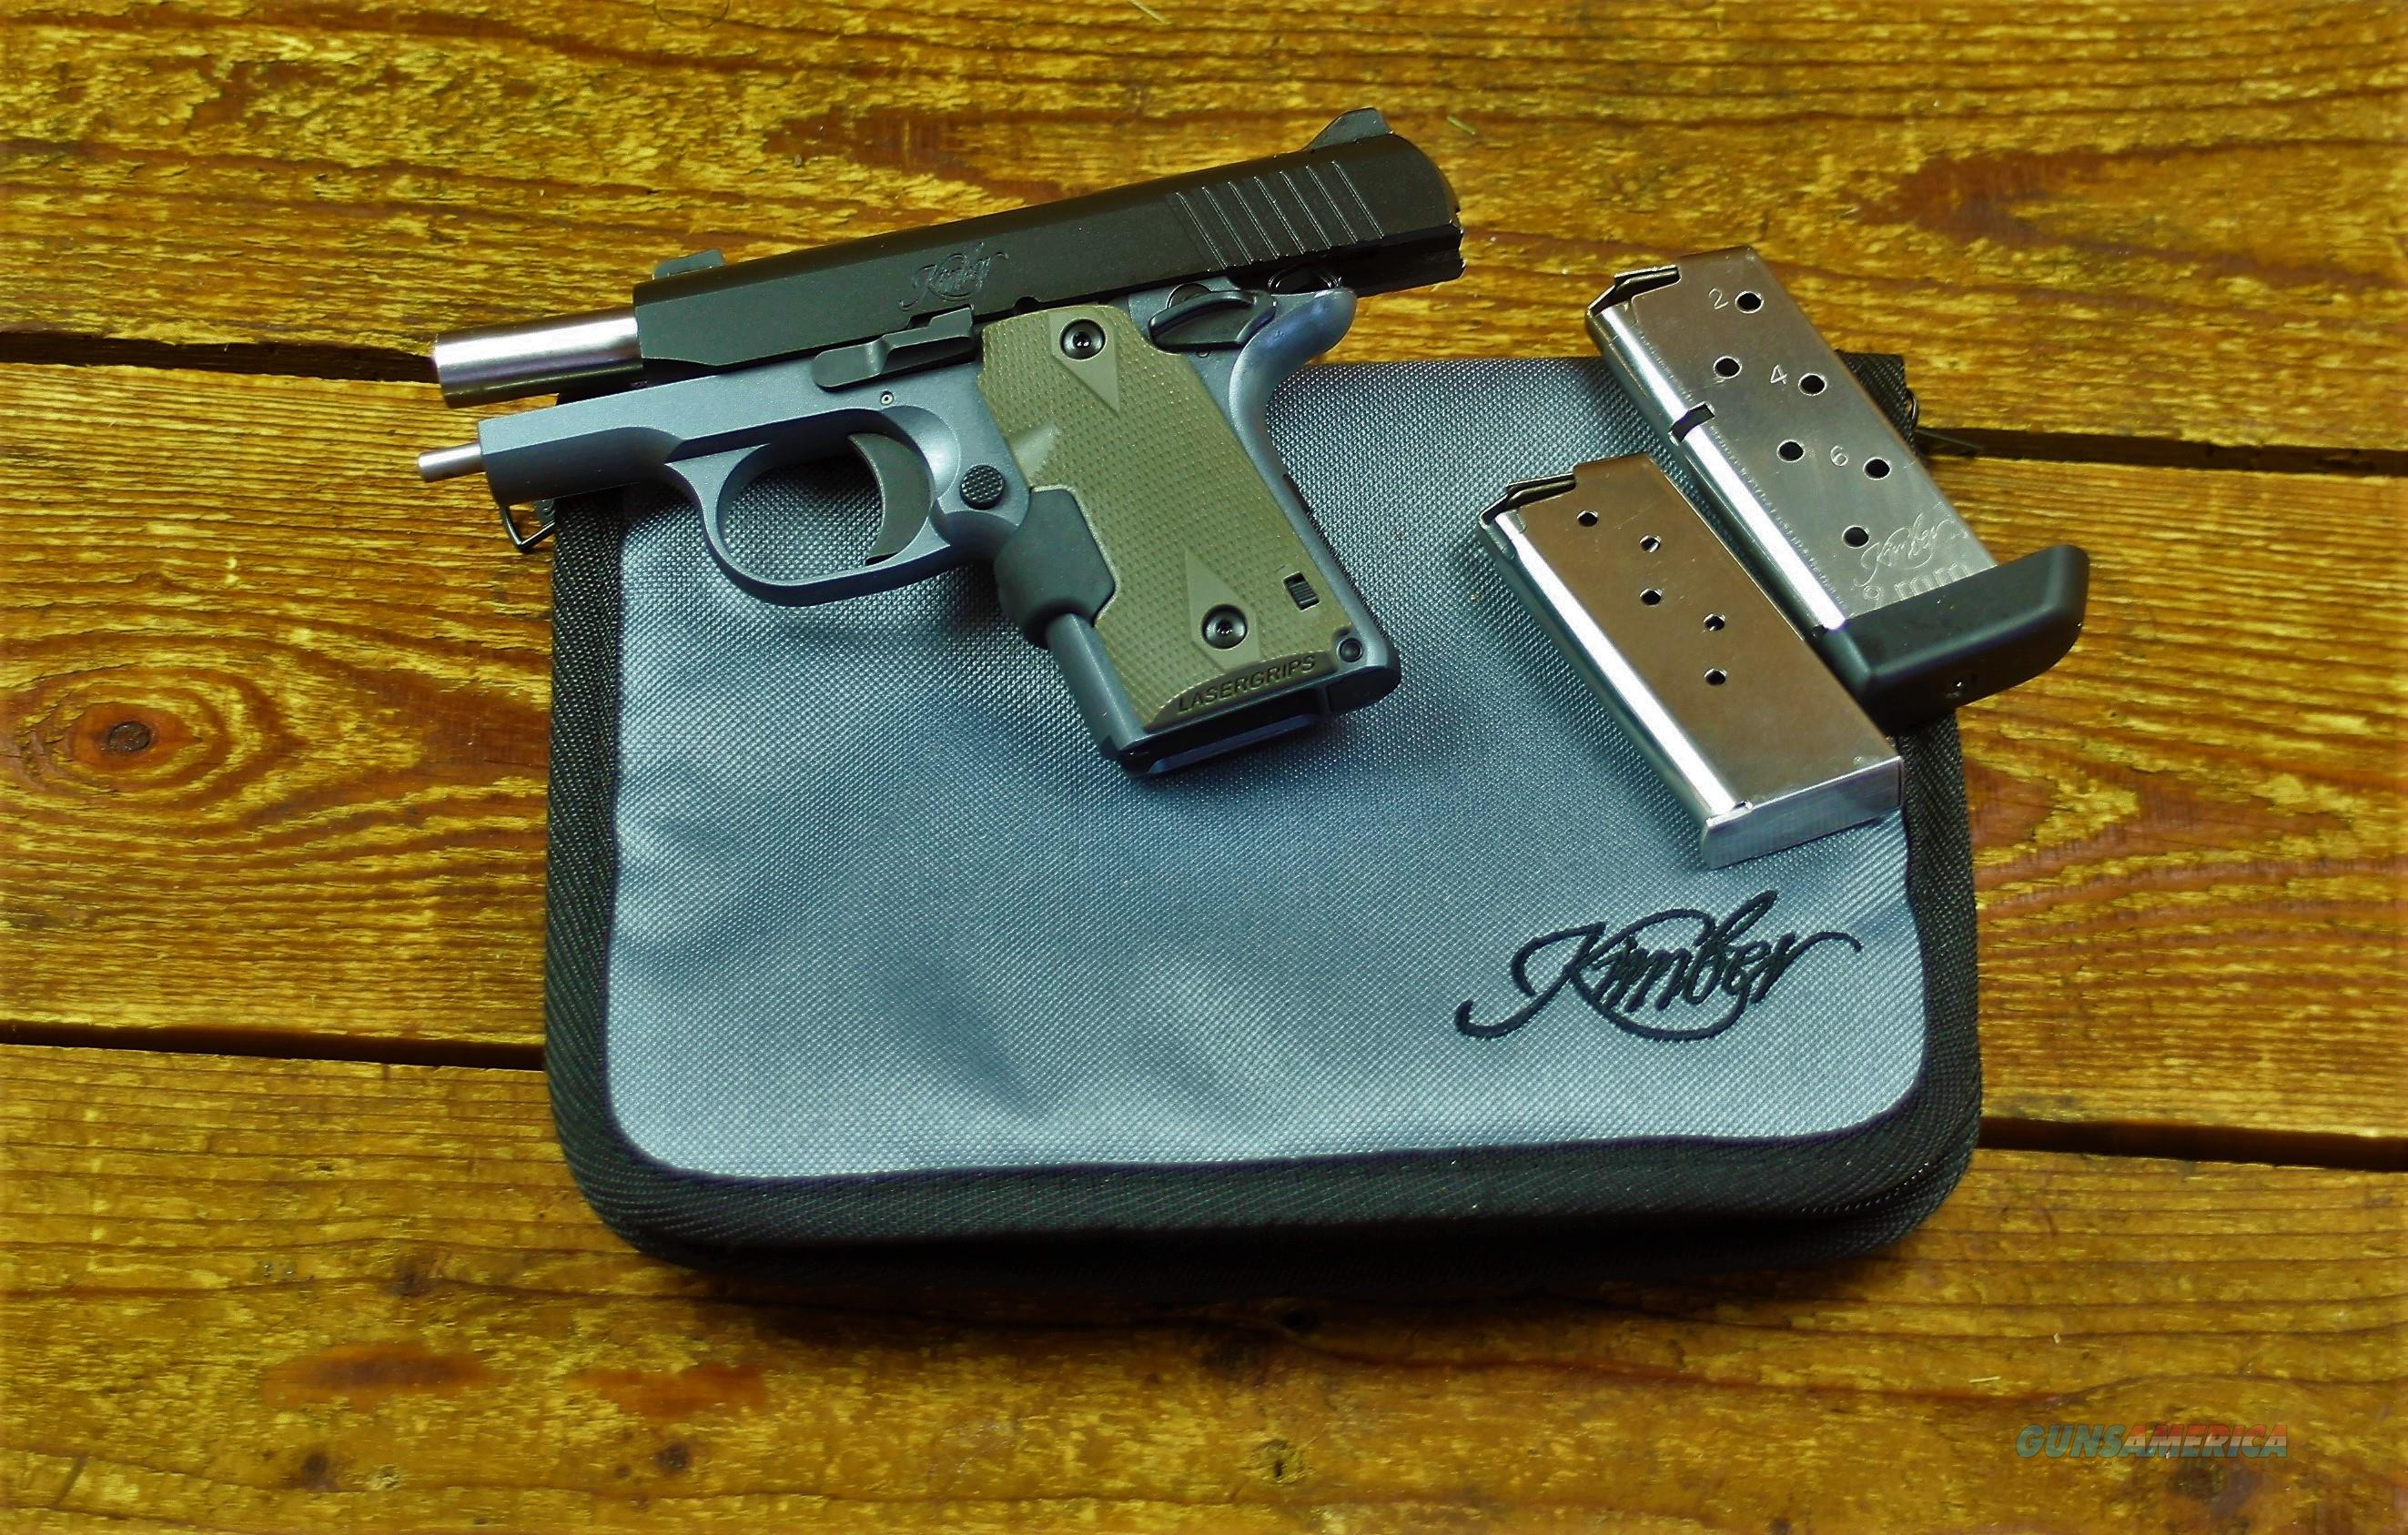 """$65 EASY PAY LAYAWAY Kimber Crime Prevention ! Conceal & Carry 1911 style in OD Green W Soft Case Micro 9 Woodland Night  7 LBS Trigger Pull Barrel 2.75""""  9mm Stainless Steel POCKET PISTOL  Crimson Trace Laser grips red laser   3300178  Guns > Pistols > Kimber of America Pistols > 1911"""